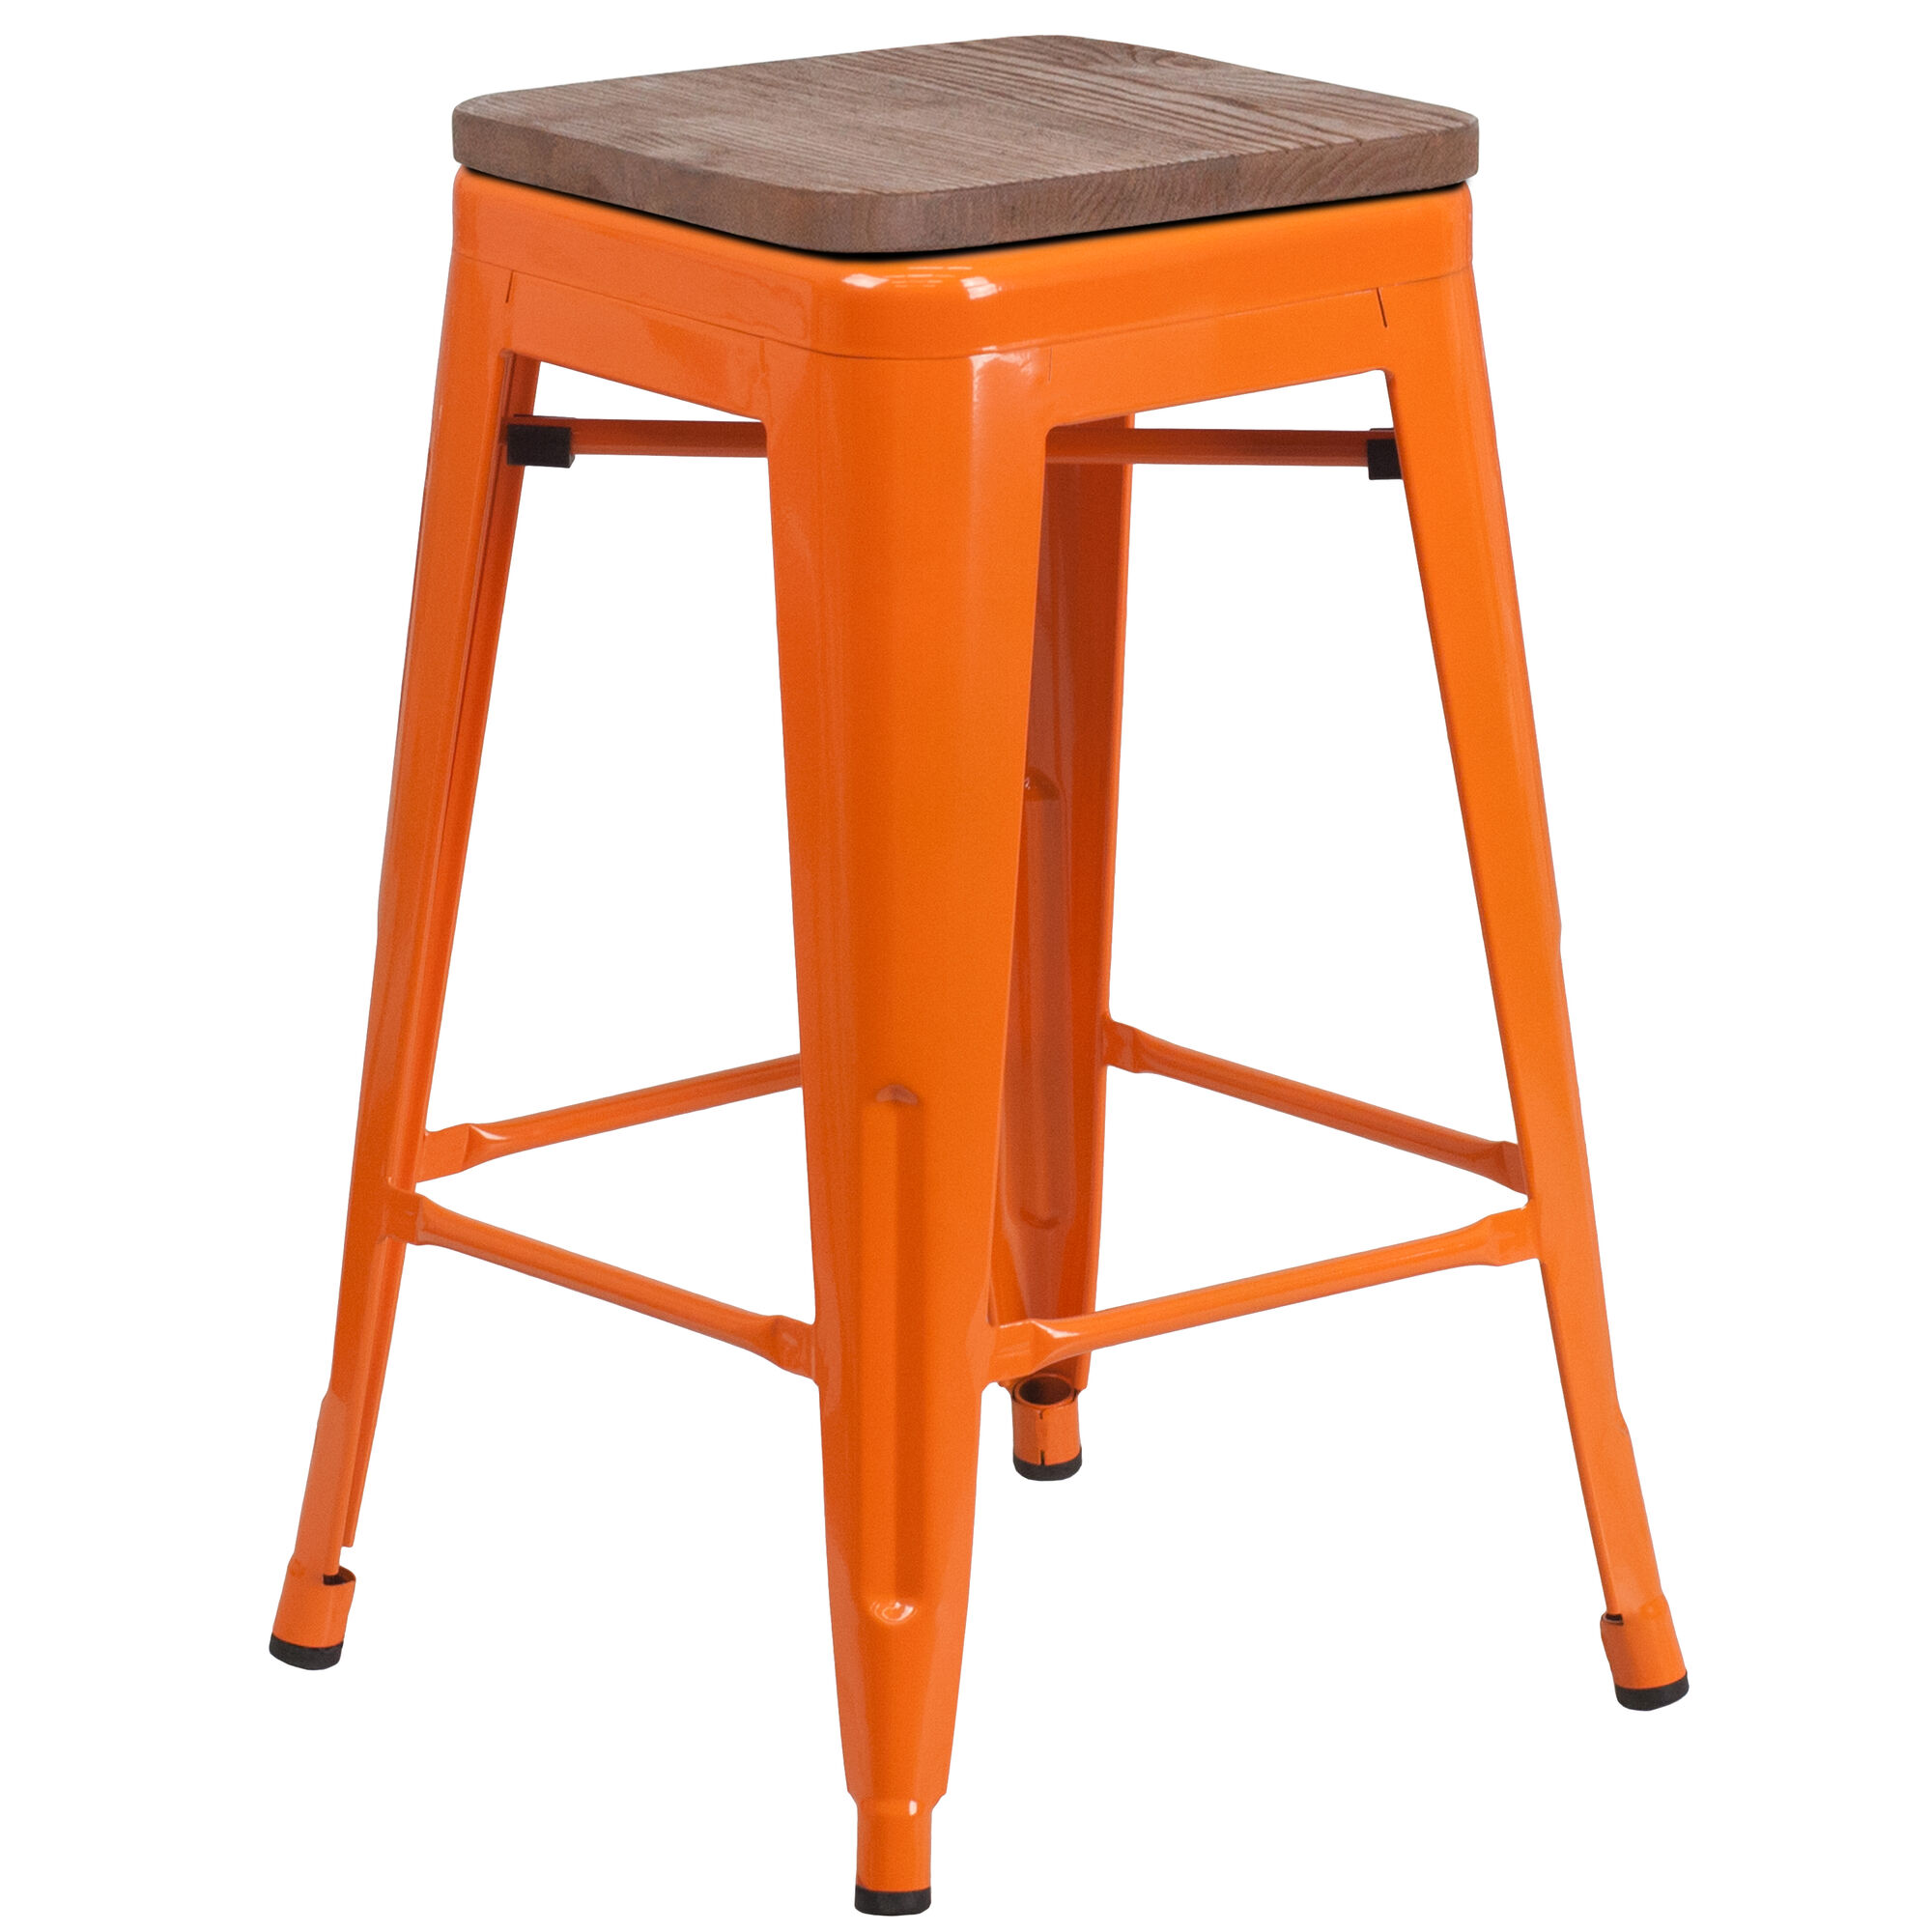 Awesome 24 High Backless Orange Metal Counter Height Stool With Square Wood Seat Frankydiablos Diy Chair Ideas Frankydiabloscom